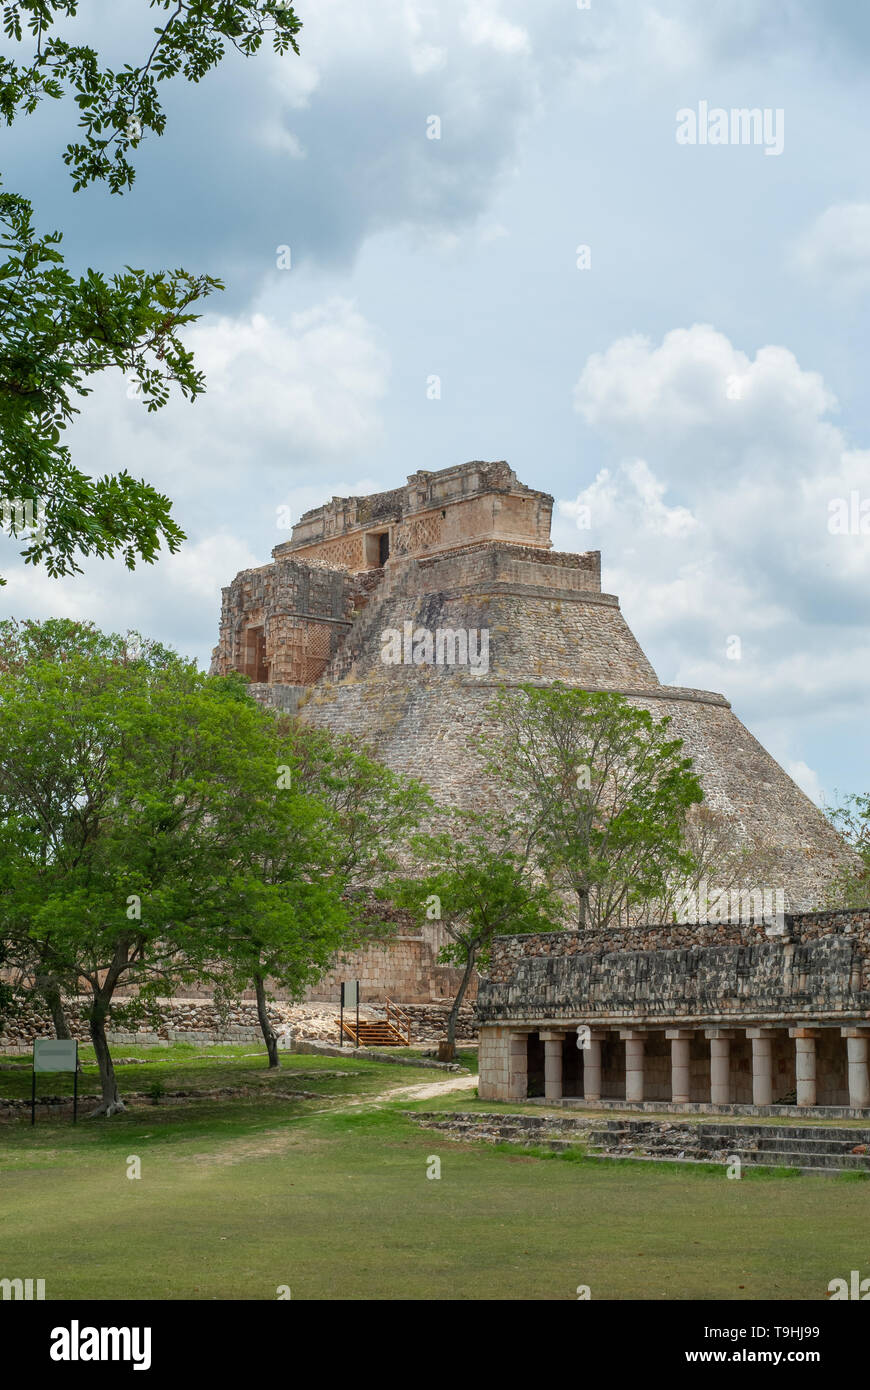 Mayan Pyramid in its entirety, in the archaeological area of Ek Balam, on the Yucatan peninsula - Stock Image